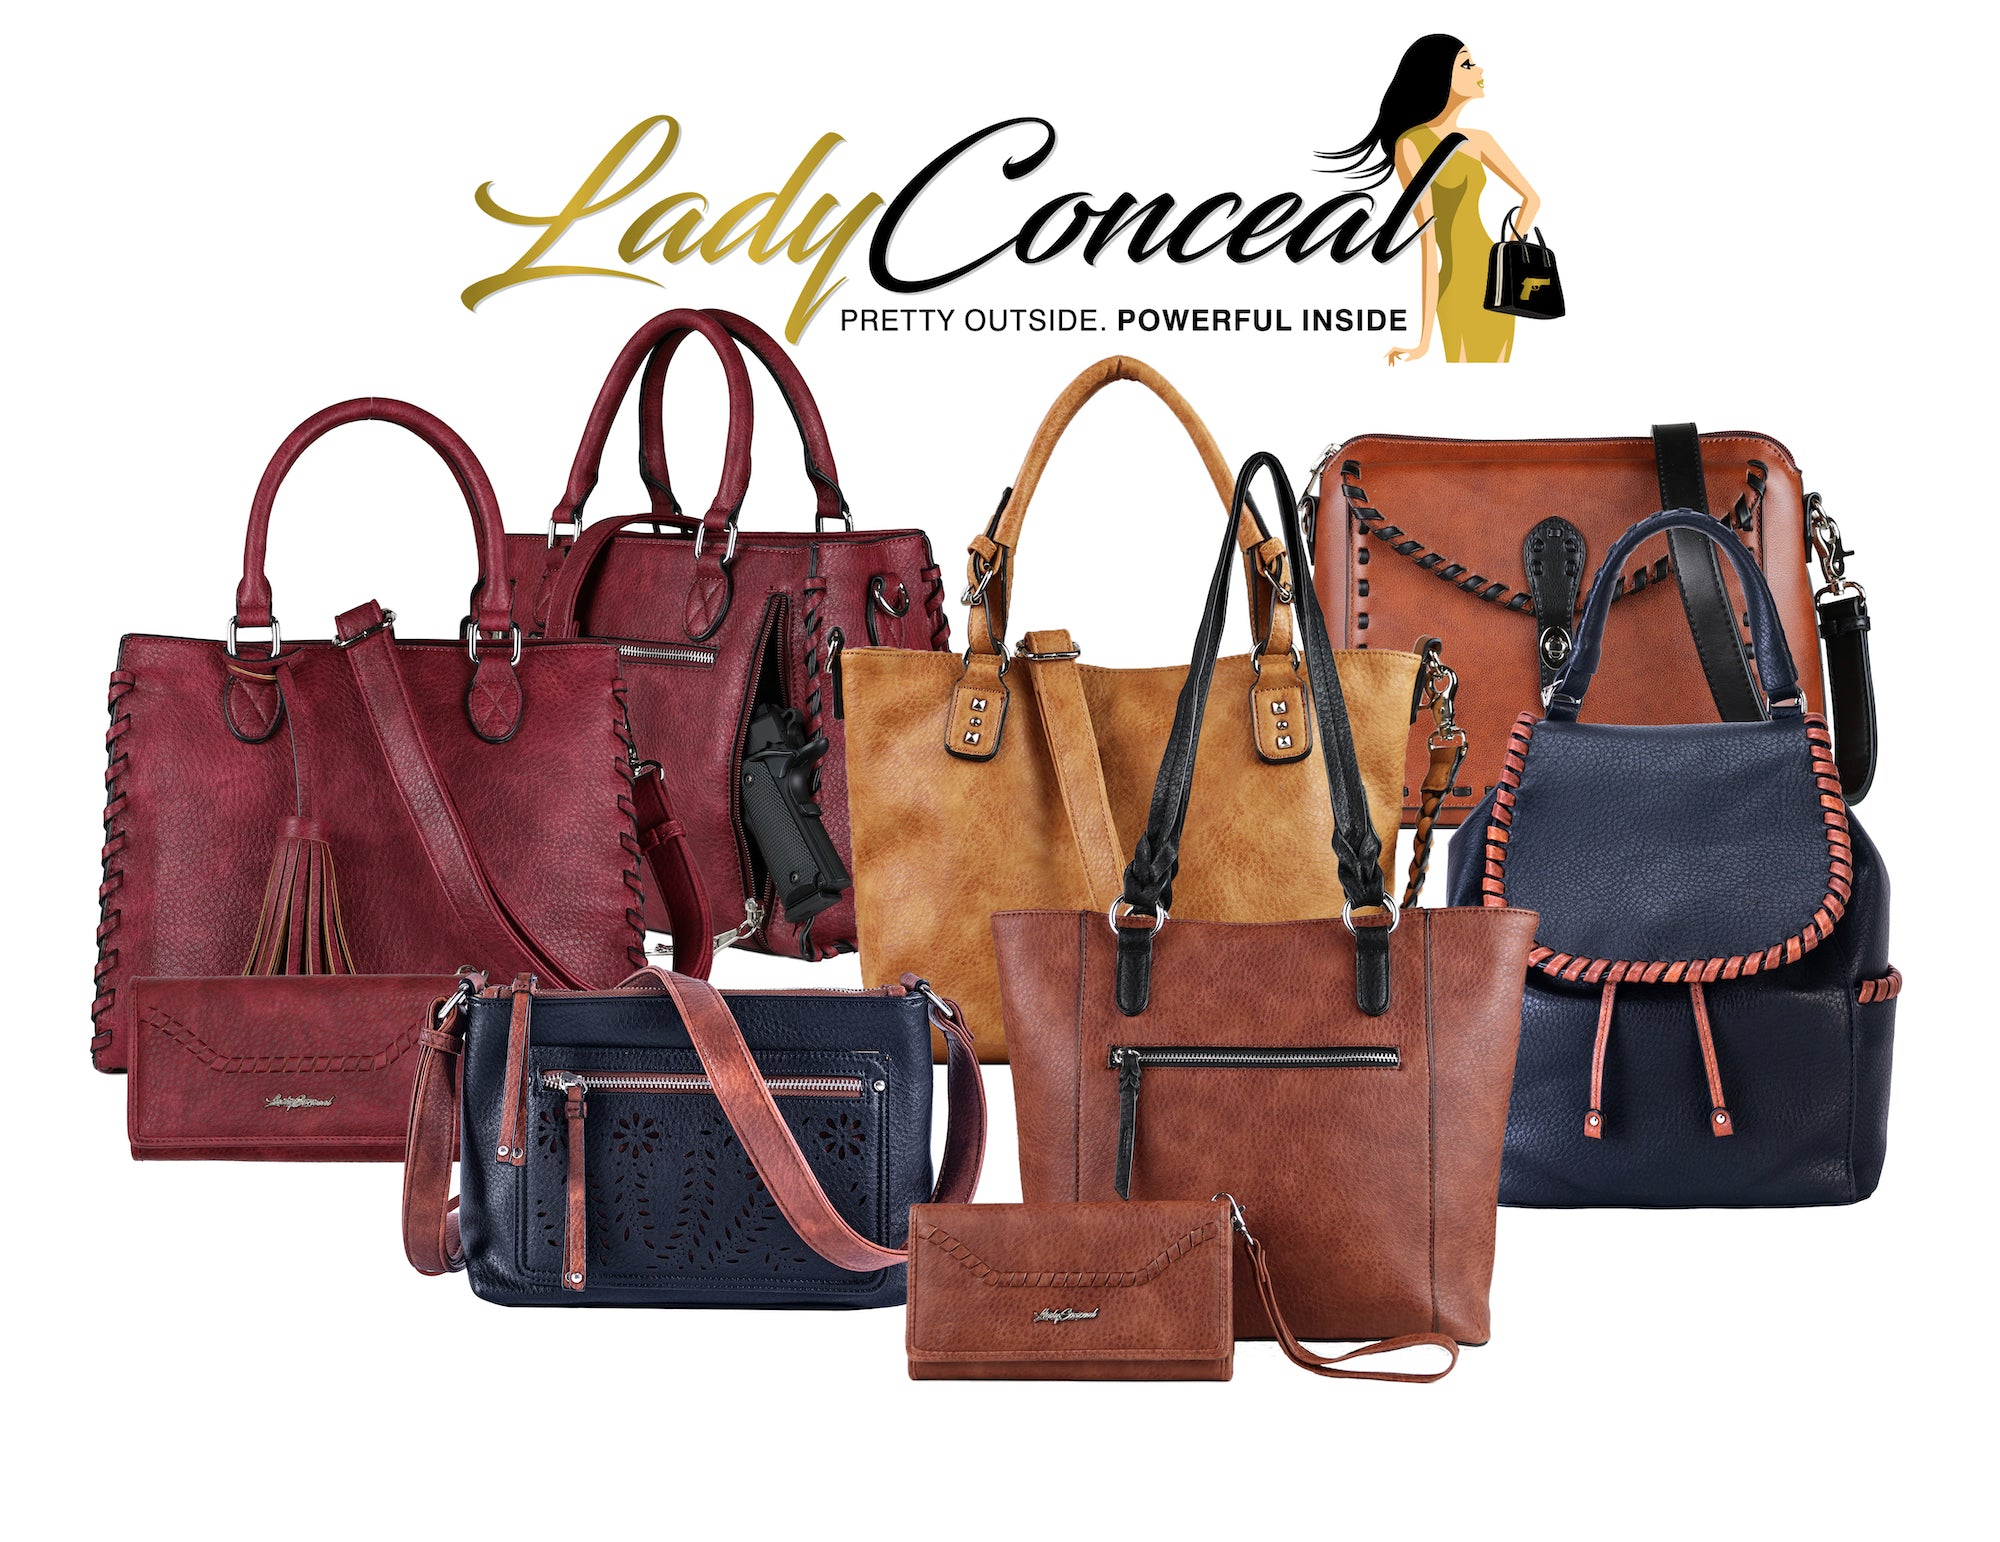 Lady Conceal Purses